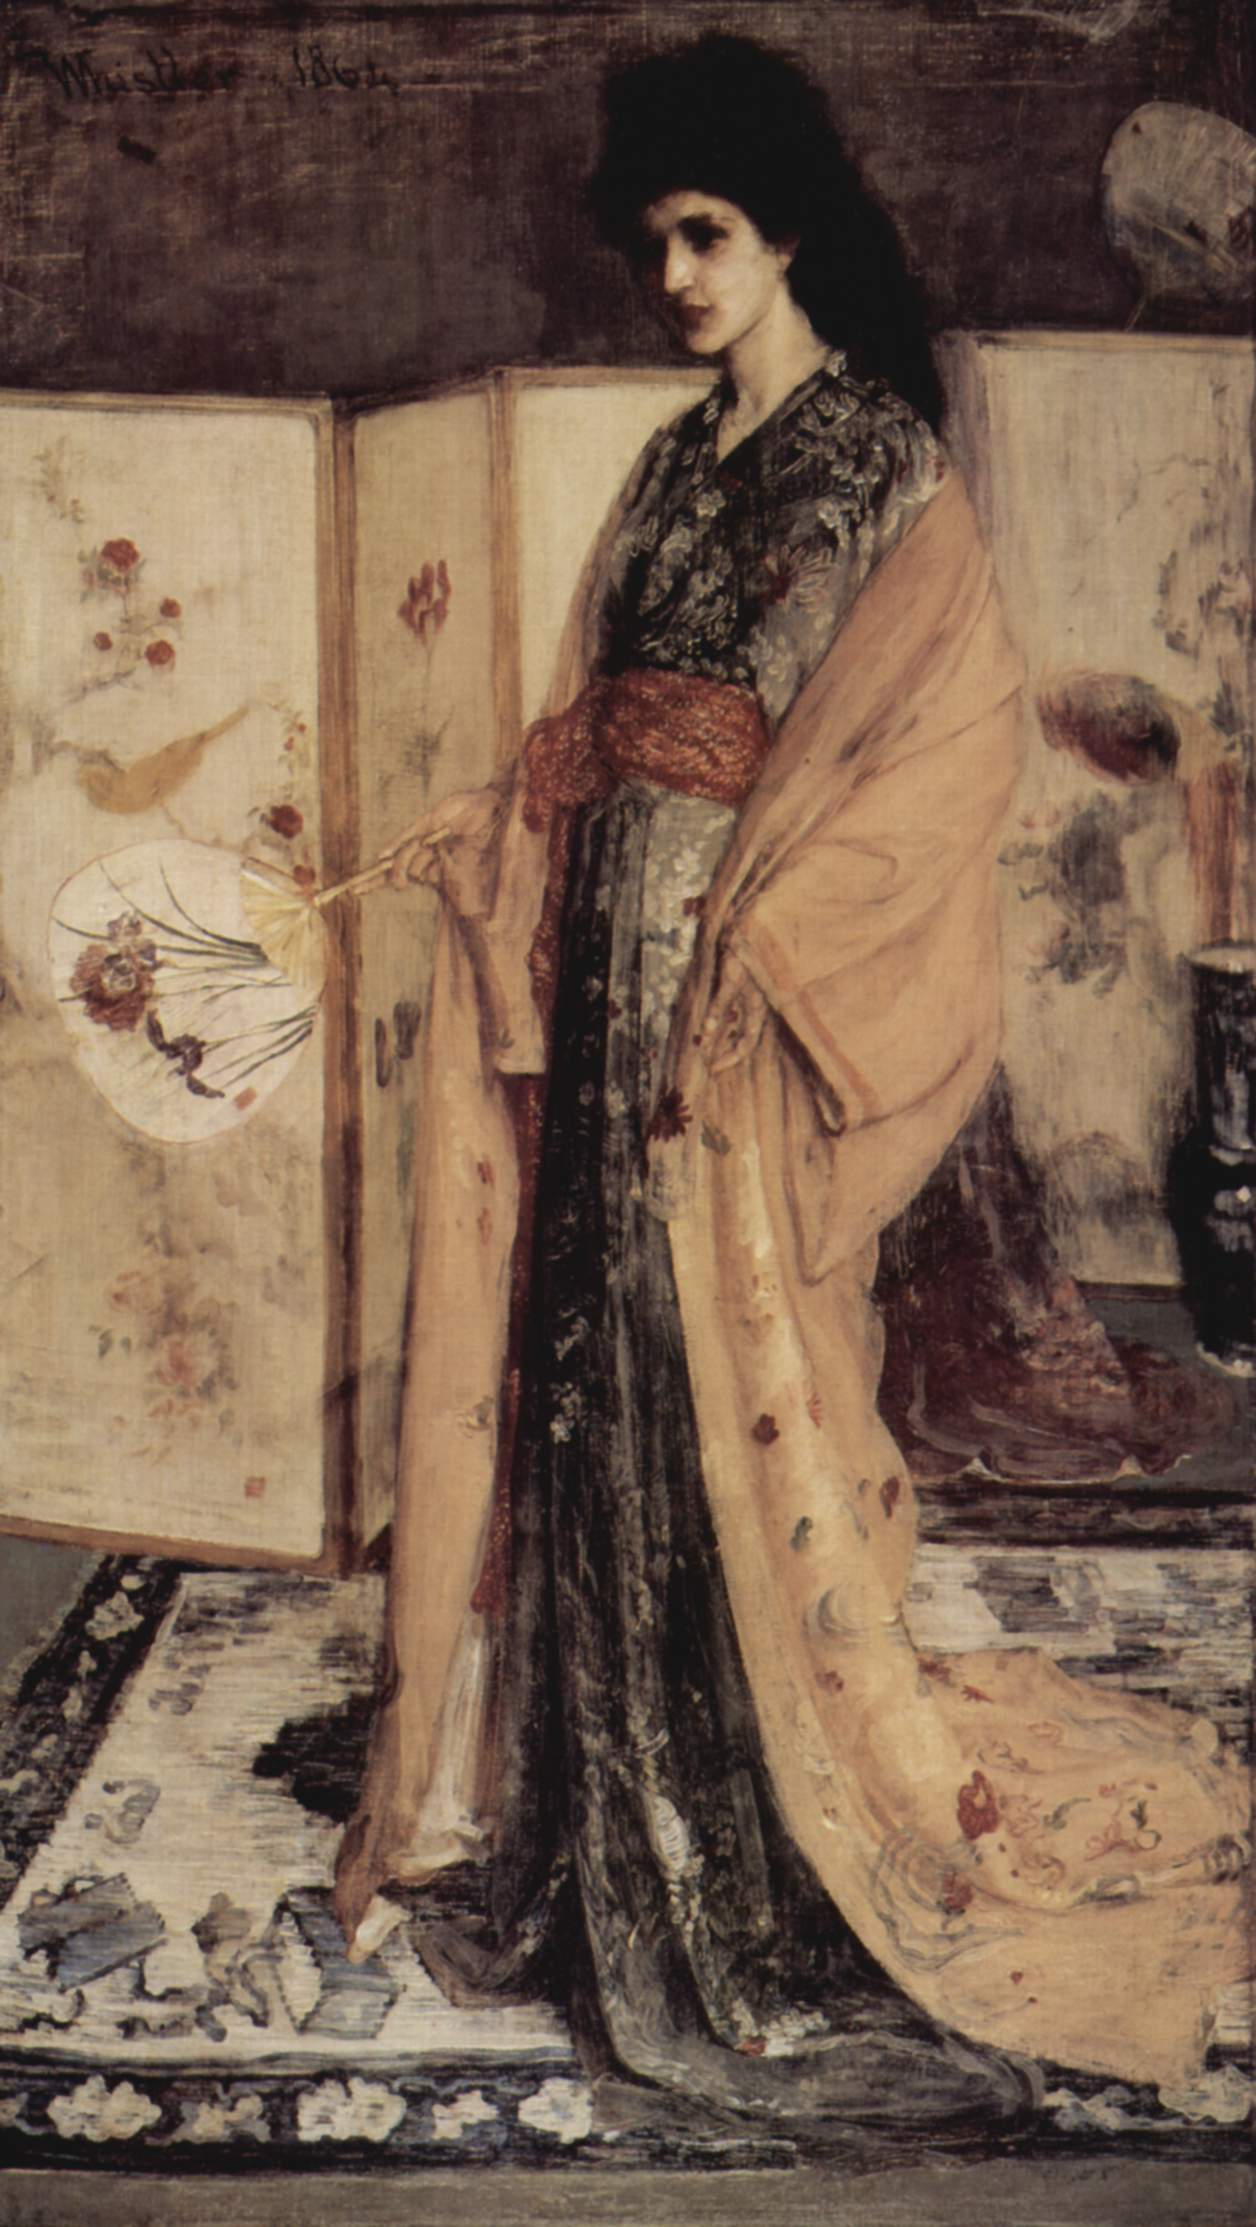 https://i0.wp.com/upload.wikimedia.org/wikipedia/commons/3/32/James_Abbot_McNeill_Whistler_008.jpg